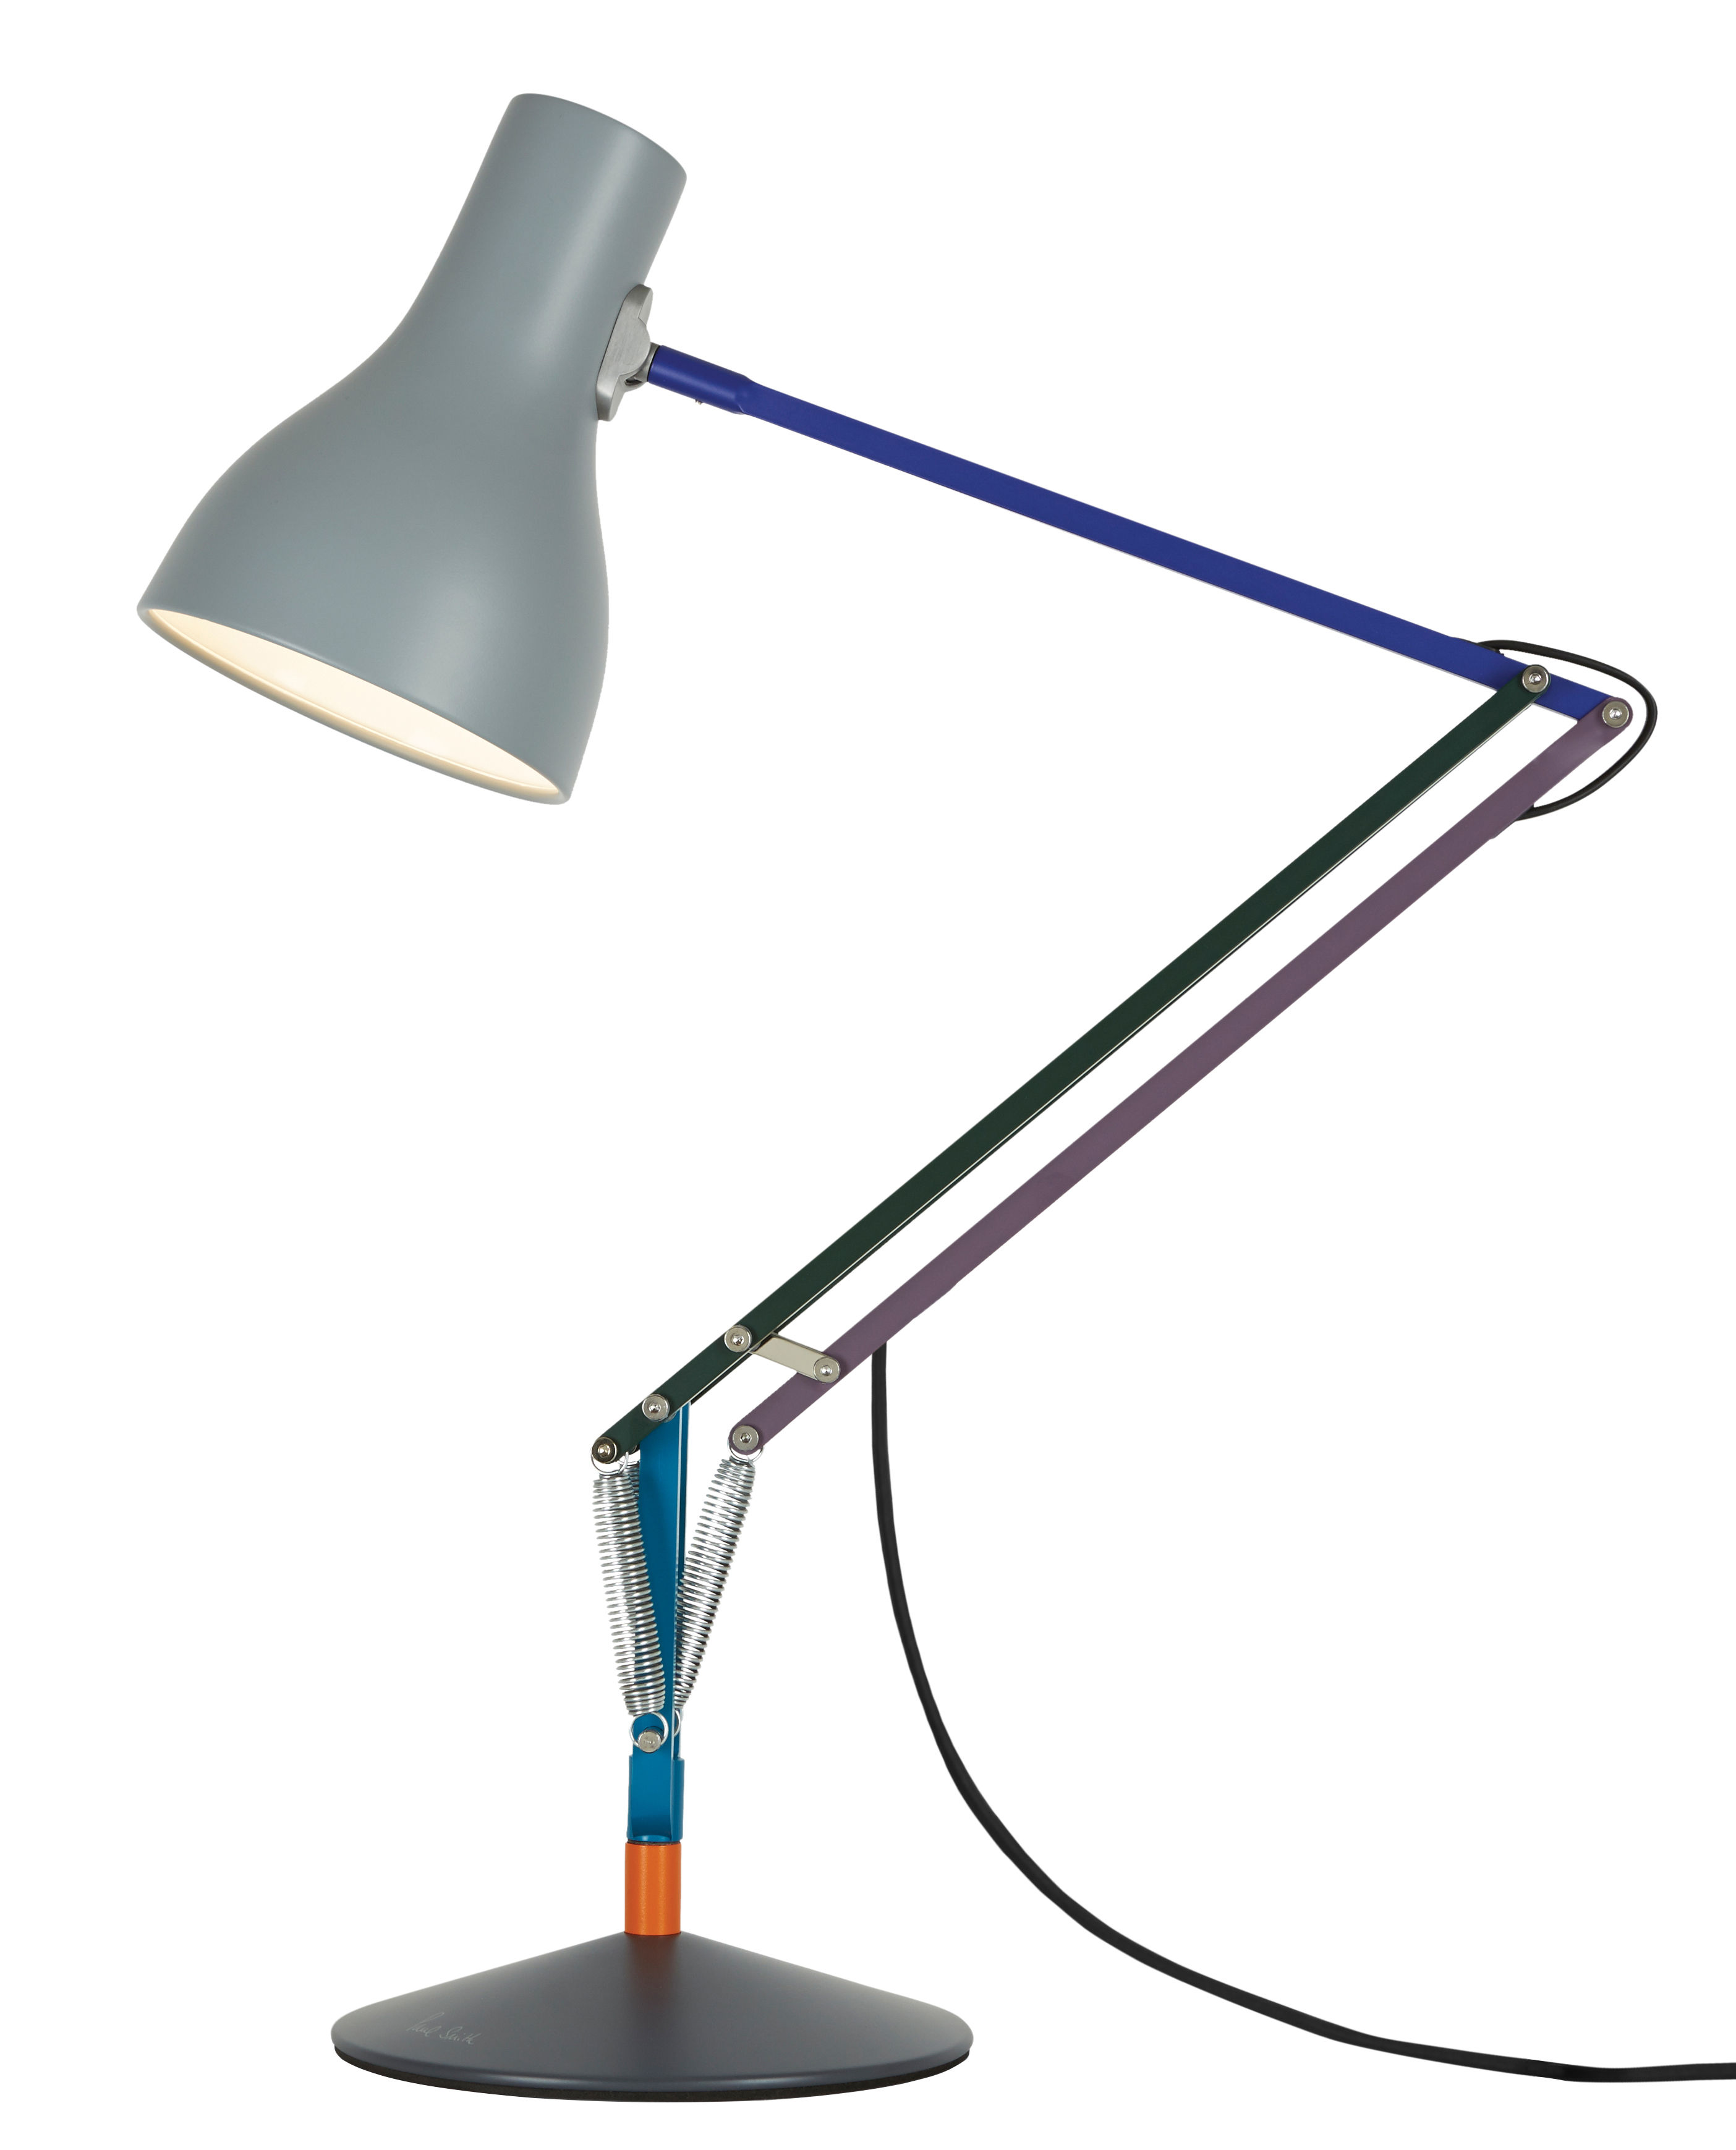 Lighting - Table Lamps - Type 75 Table lamp - / By Paul Smith - Edition no. 2 by Anglepoise - Blue, Purple, Green, Blue - Aluminium